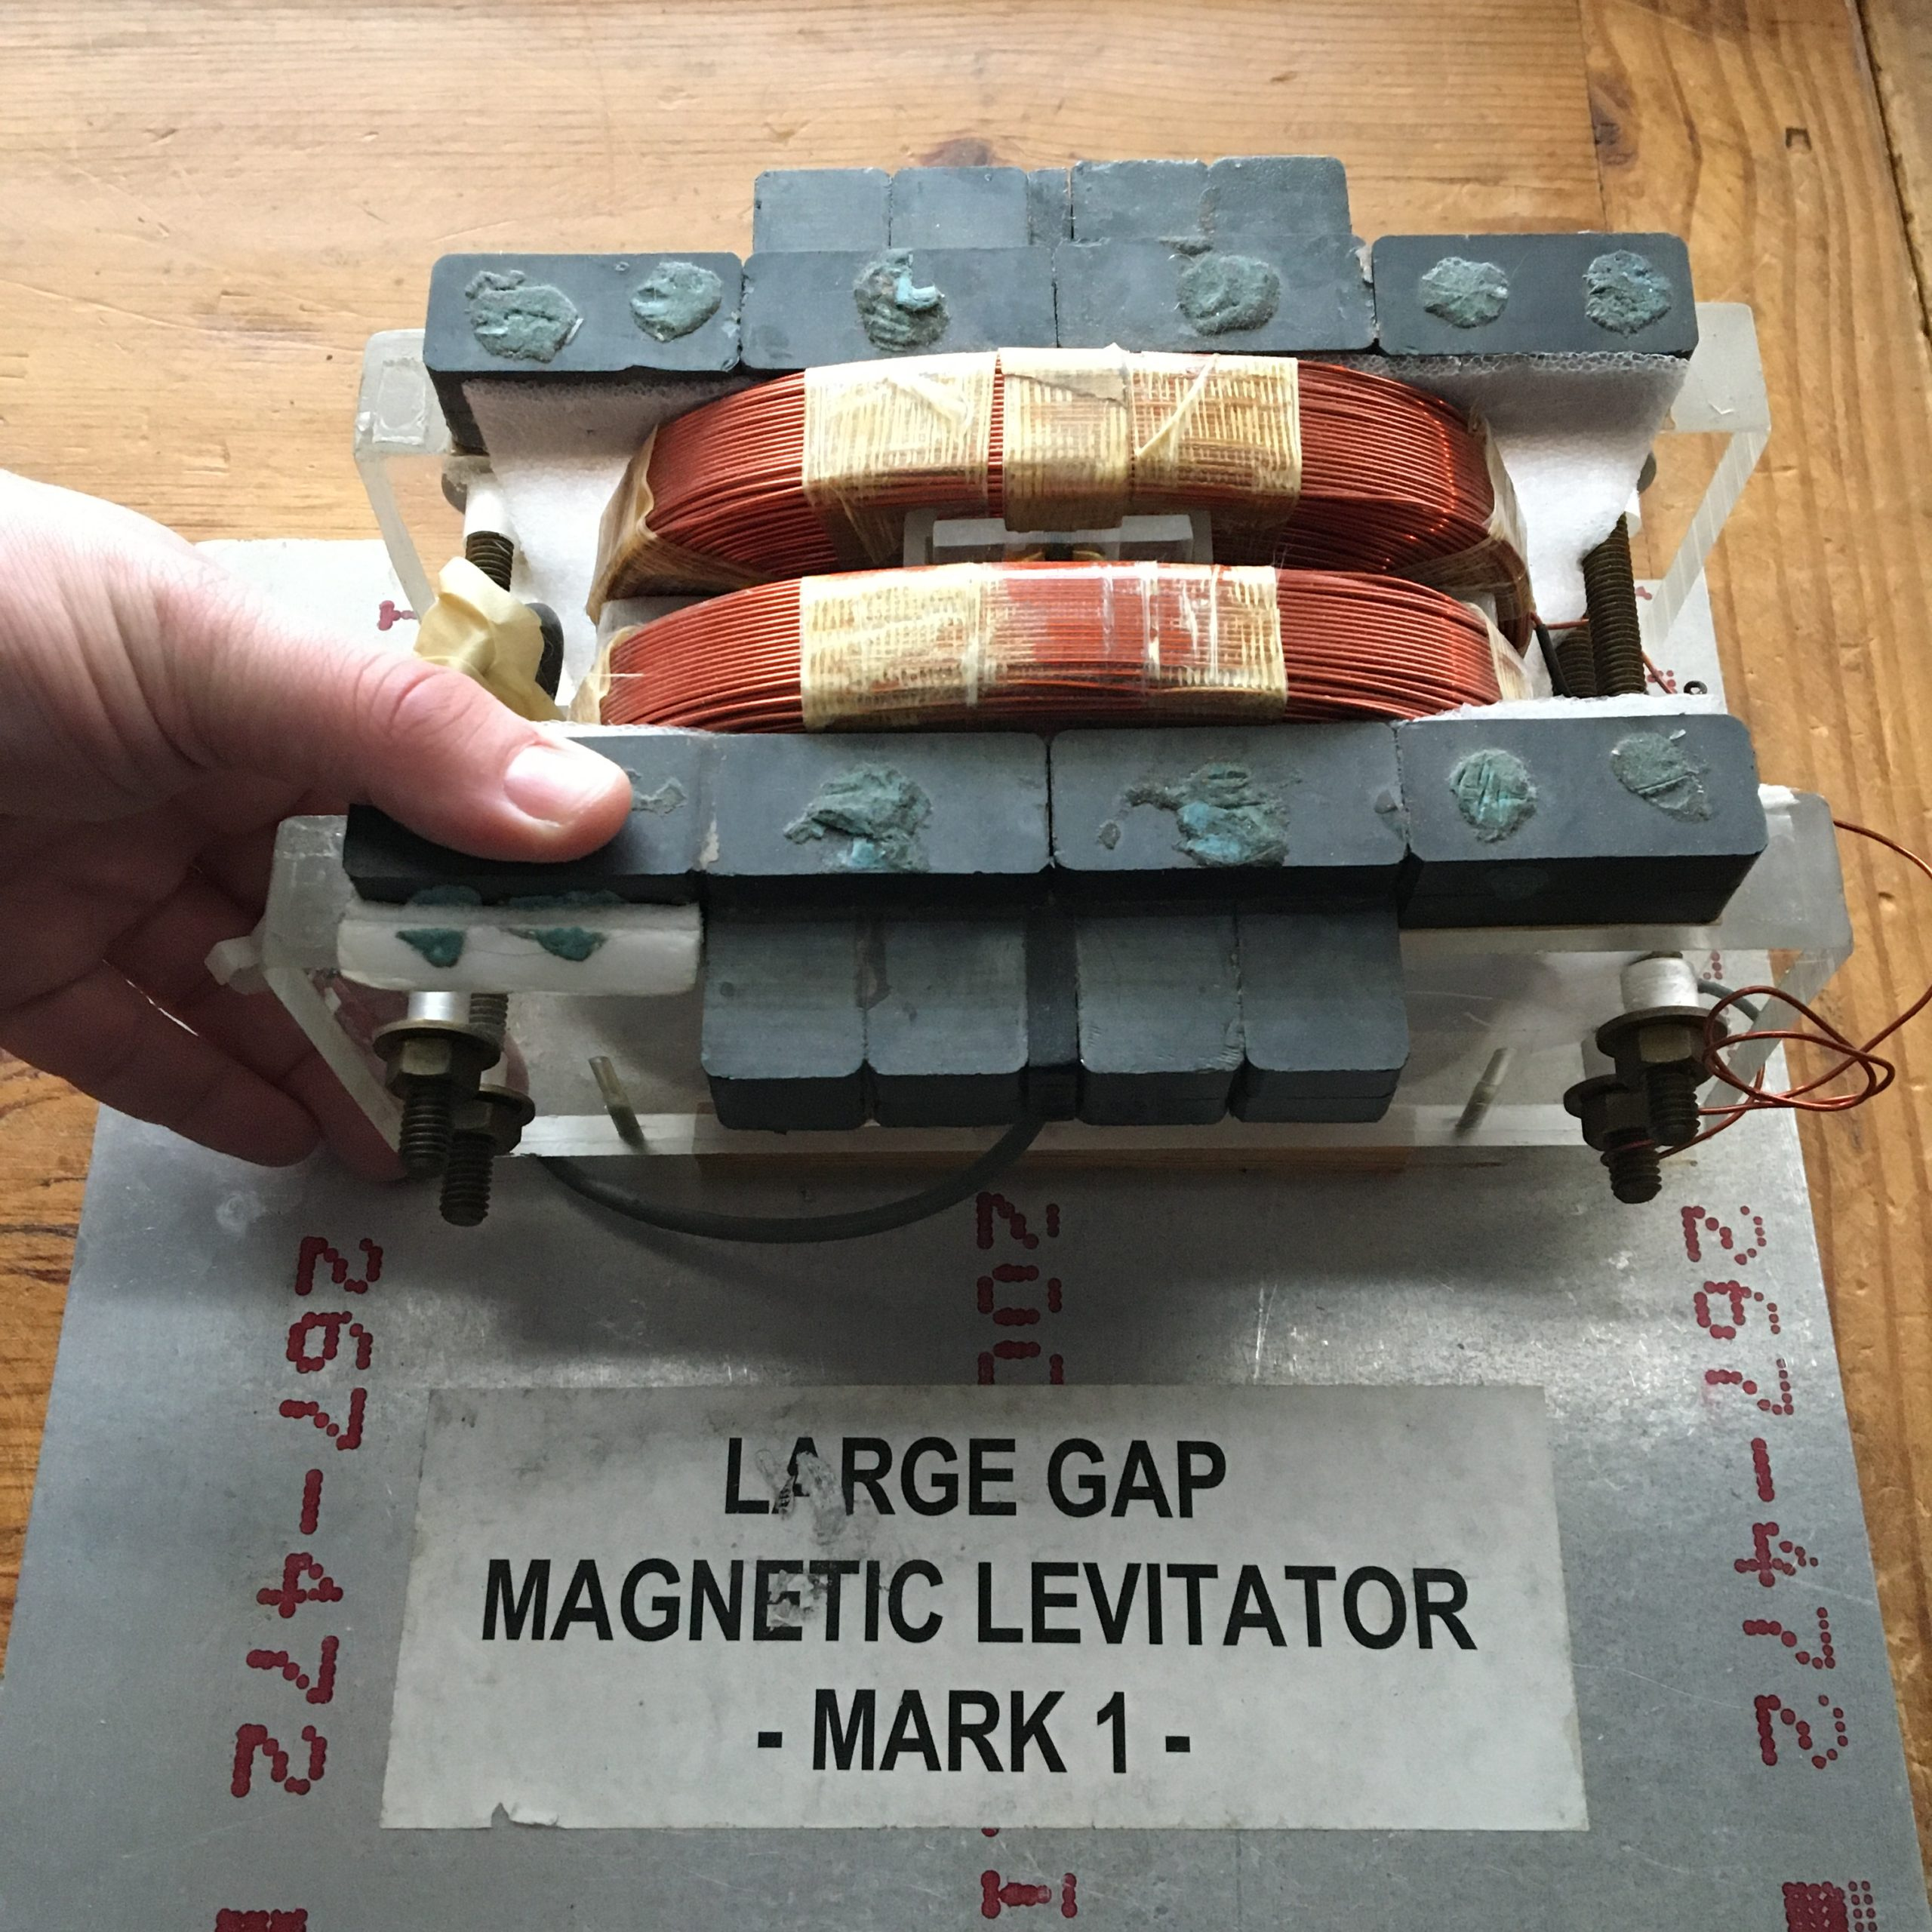 The first from-below levitator prototype